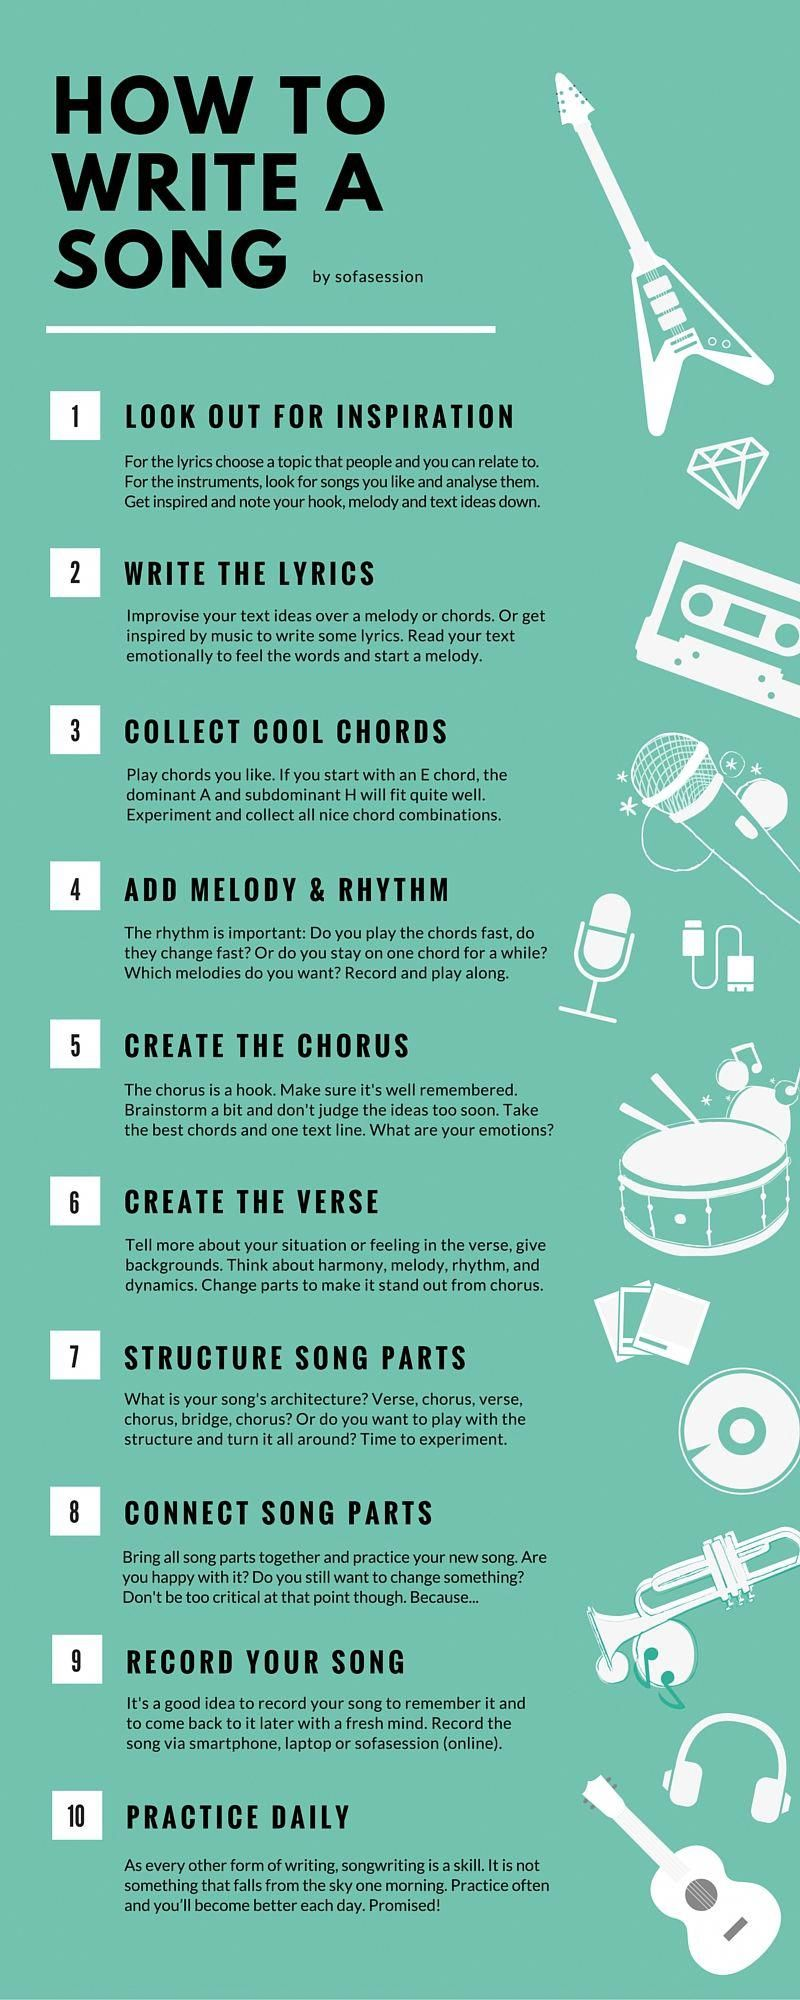 How to write a song in 10 steps as a beginner? The